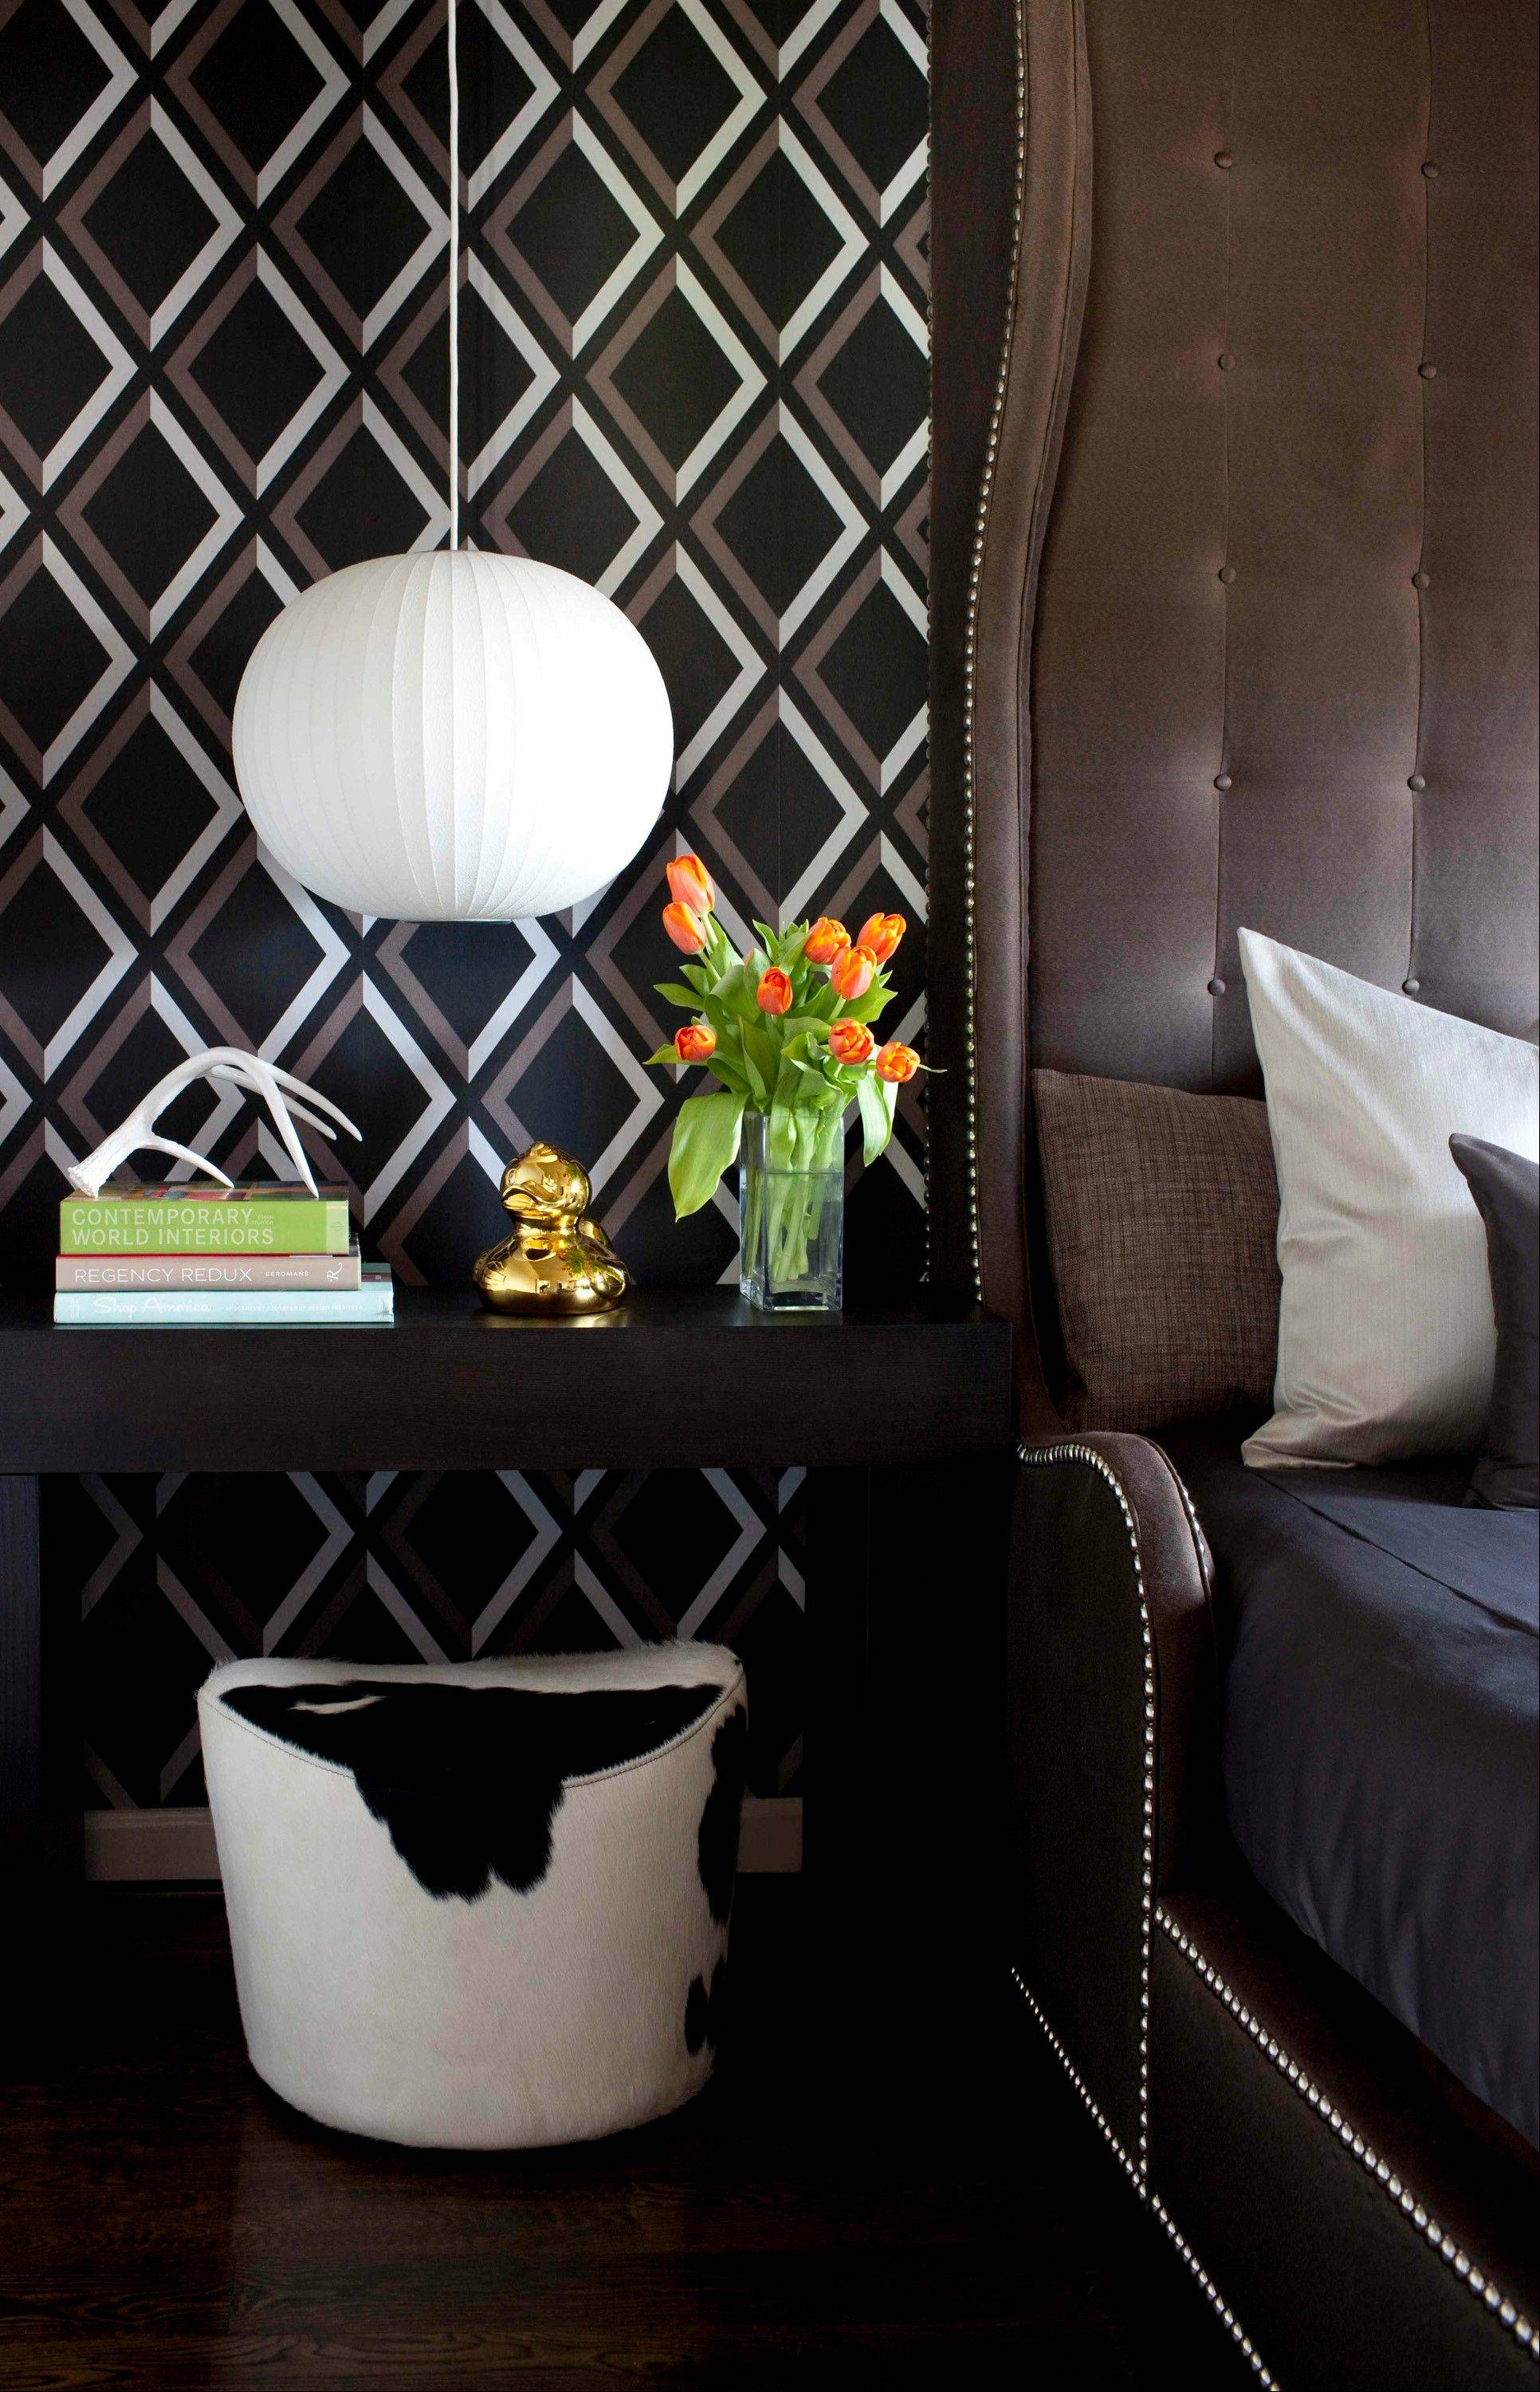 Designer Brian Patrick Flynn often installs pendant lights beside beds, directly above chests or nightstands rather than using table lamps.